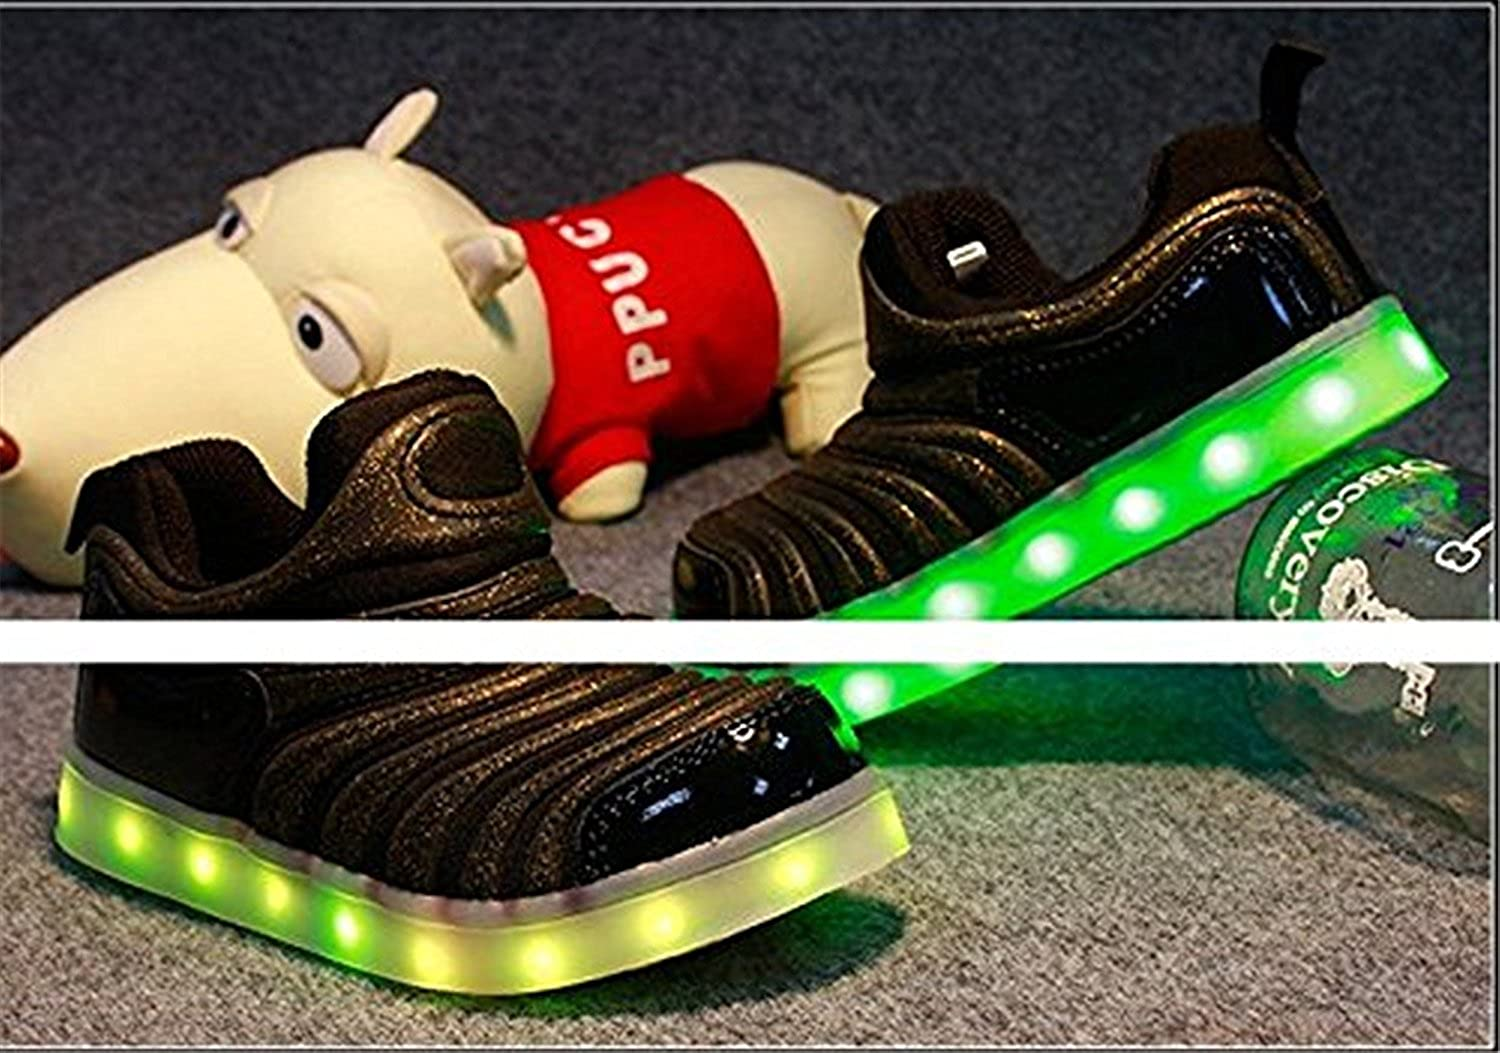 xiaoyang Kids LED Light Up Shoes Flashing Sneakers for Girls Boys Halloween